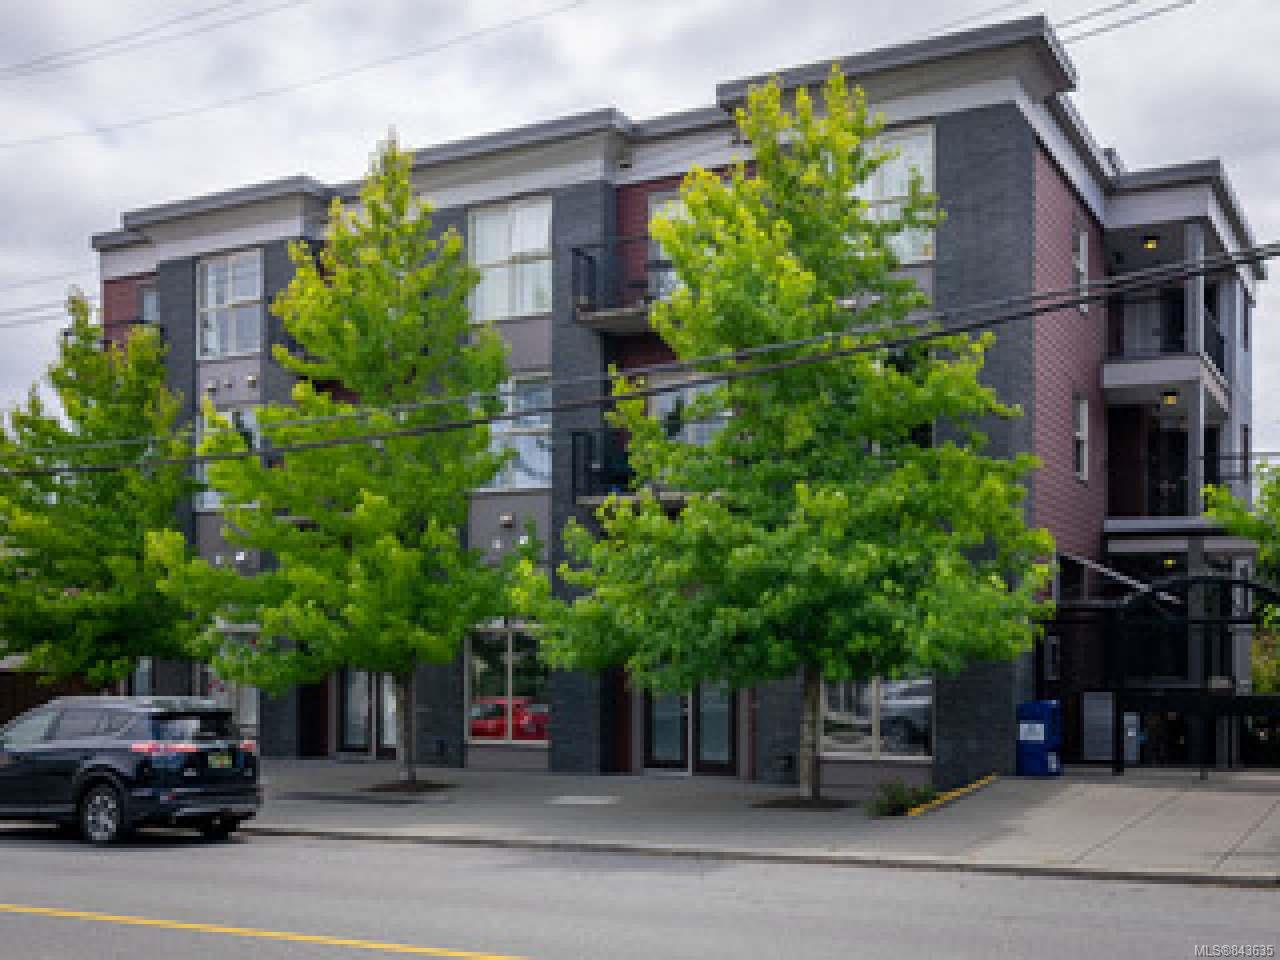 FEATURED LISTING: 404 - 555 Franklyn St NANAIMO